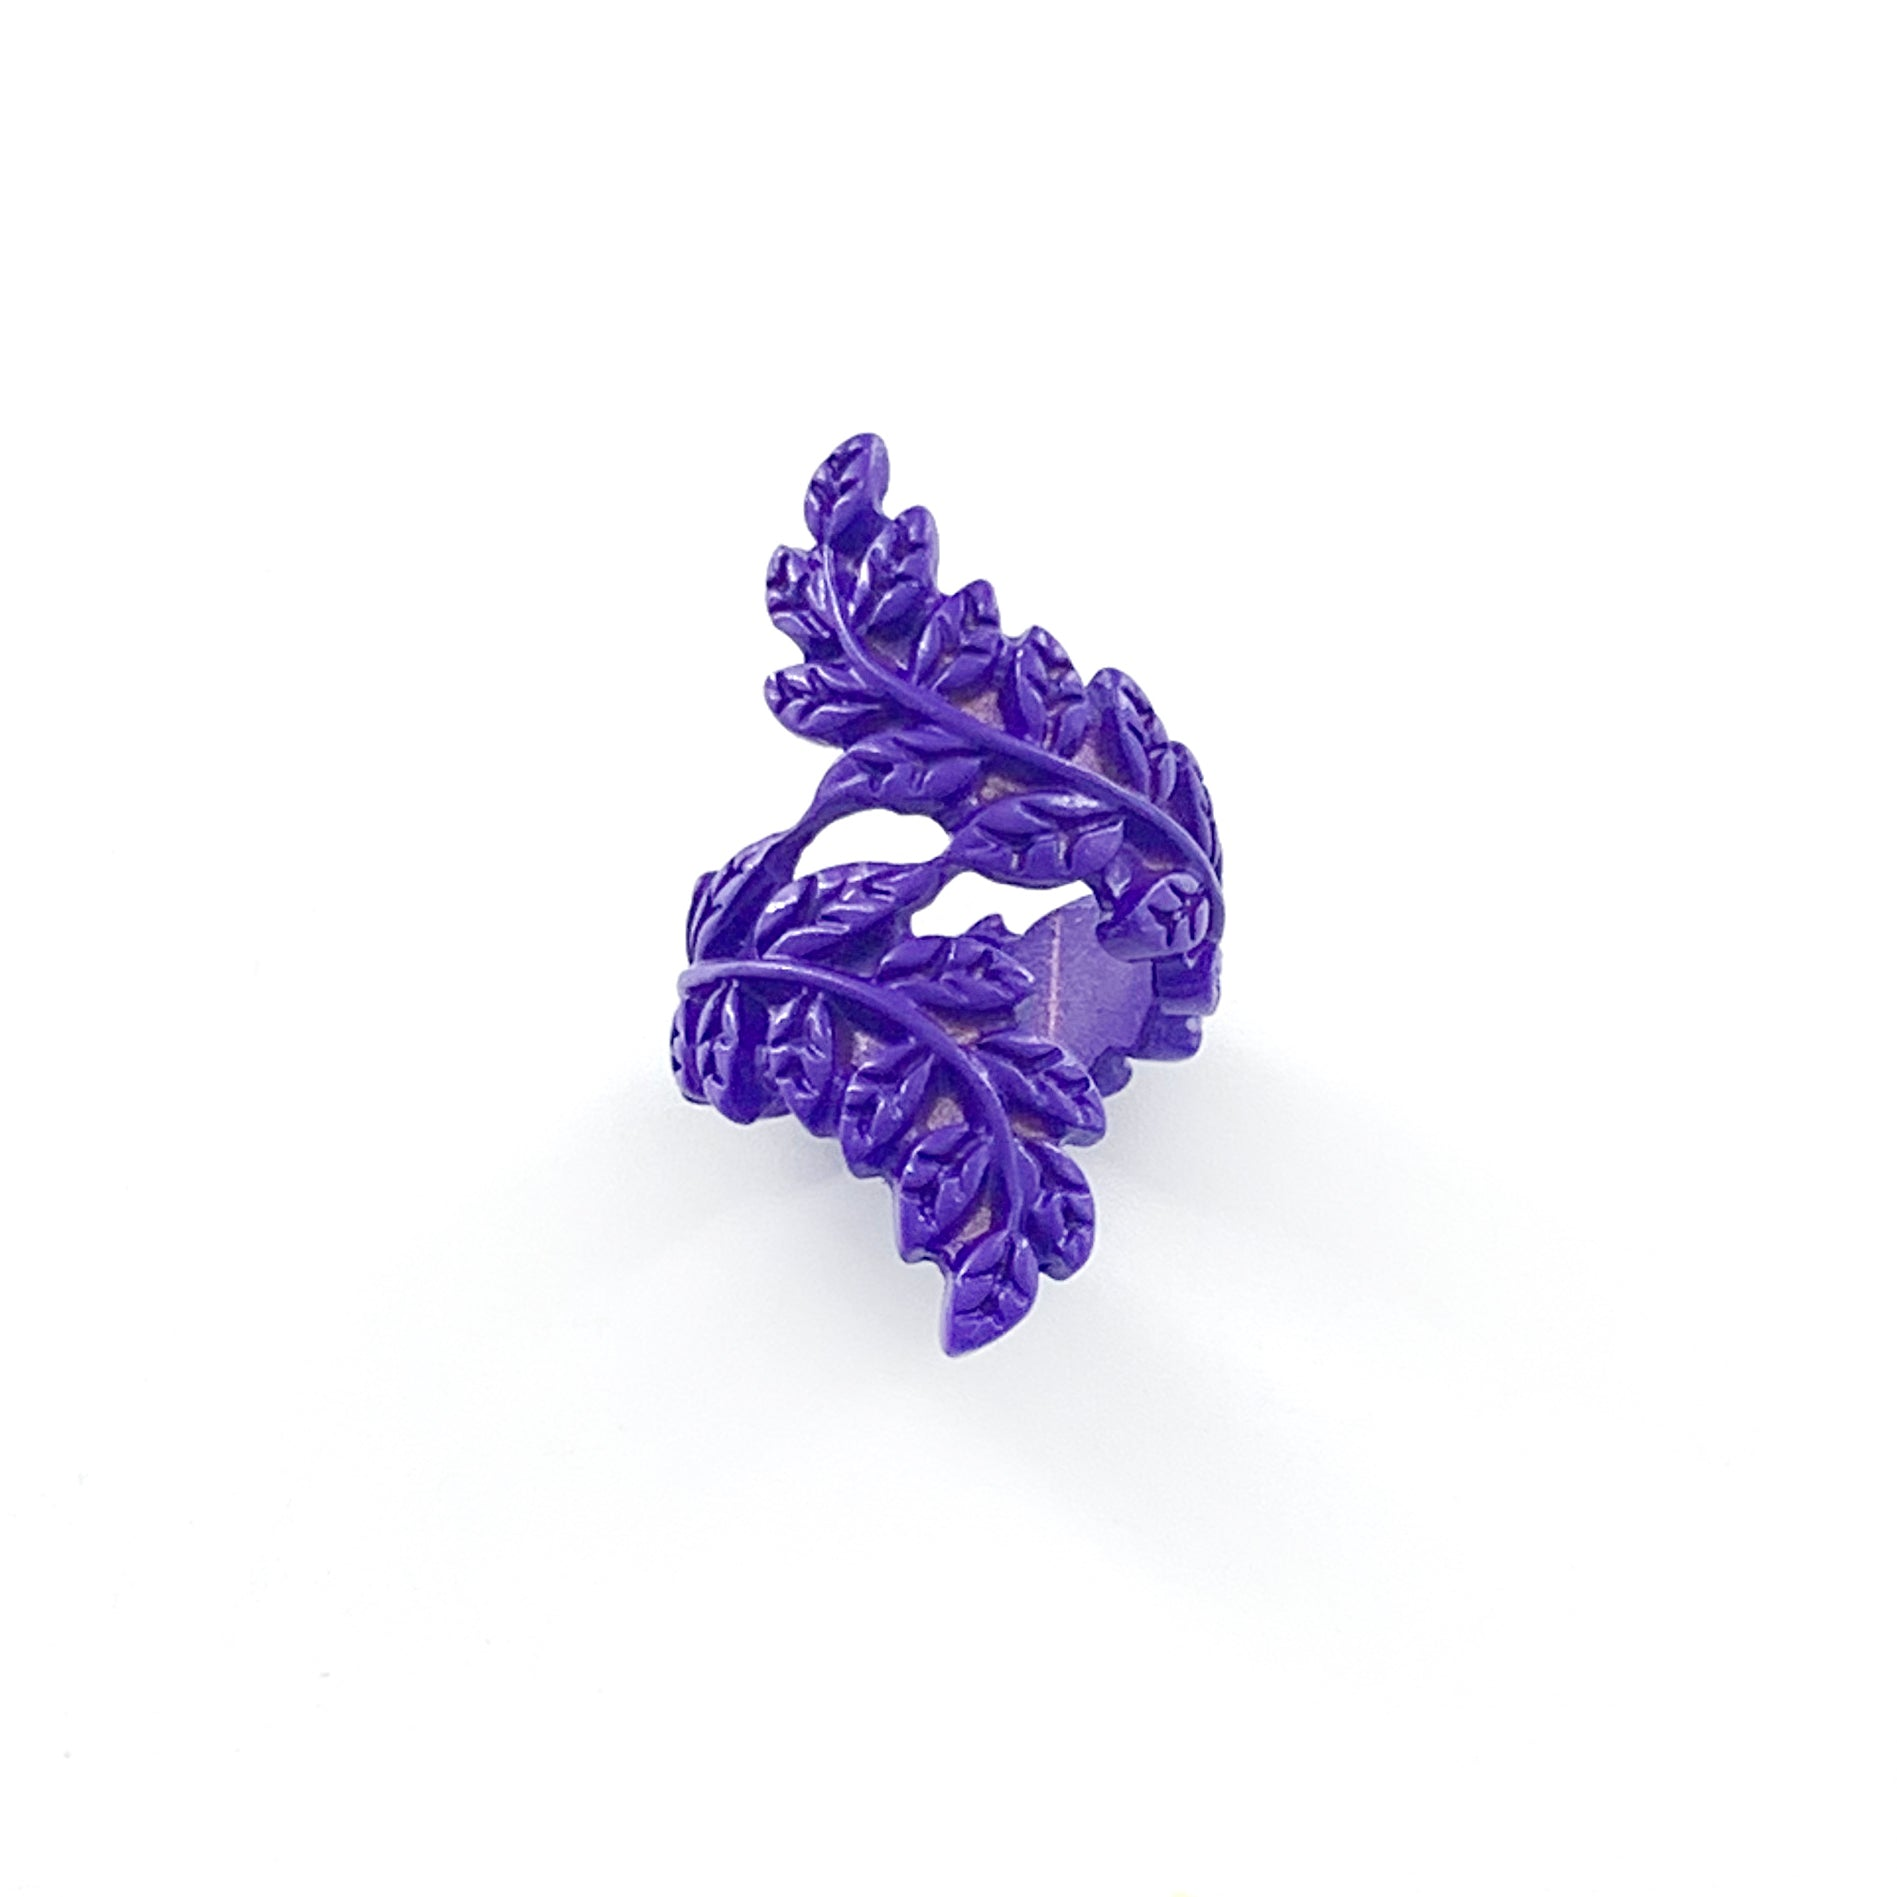 Purple coloured ring with twisted leafy design